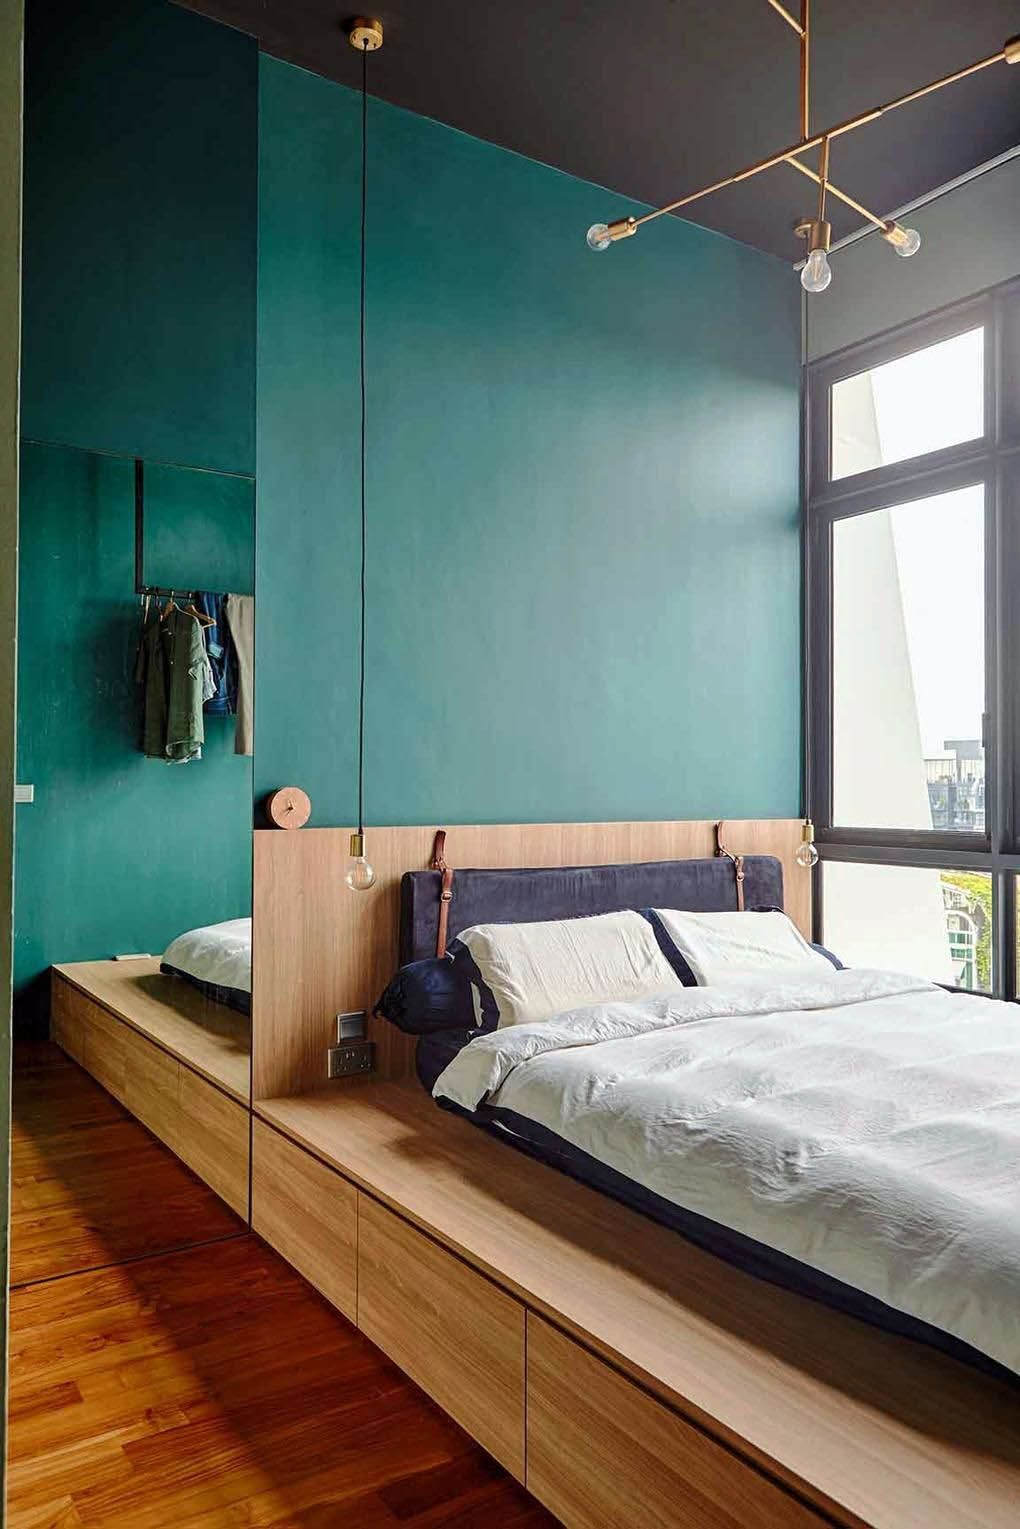 New King Bedroom Furniture Sets Under 1000 That Will Blow Your